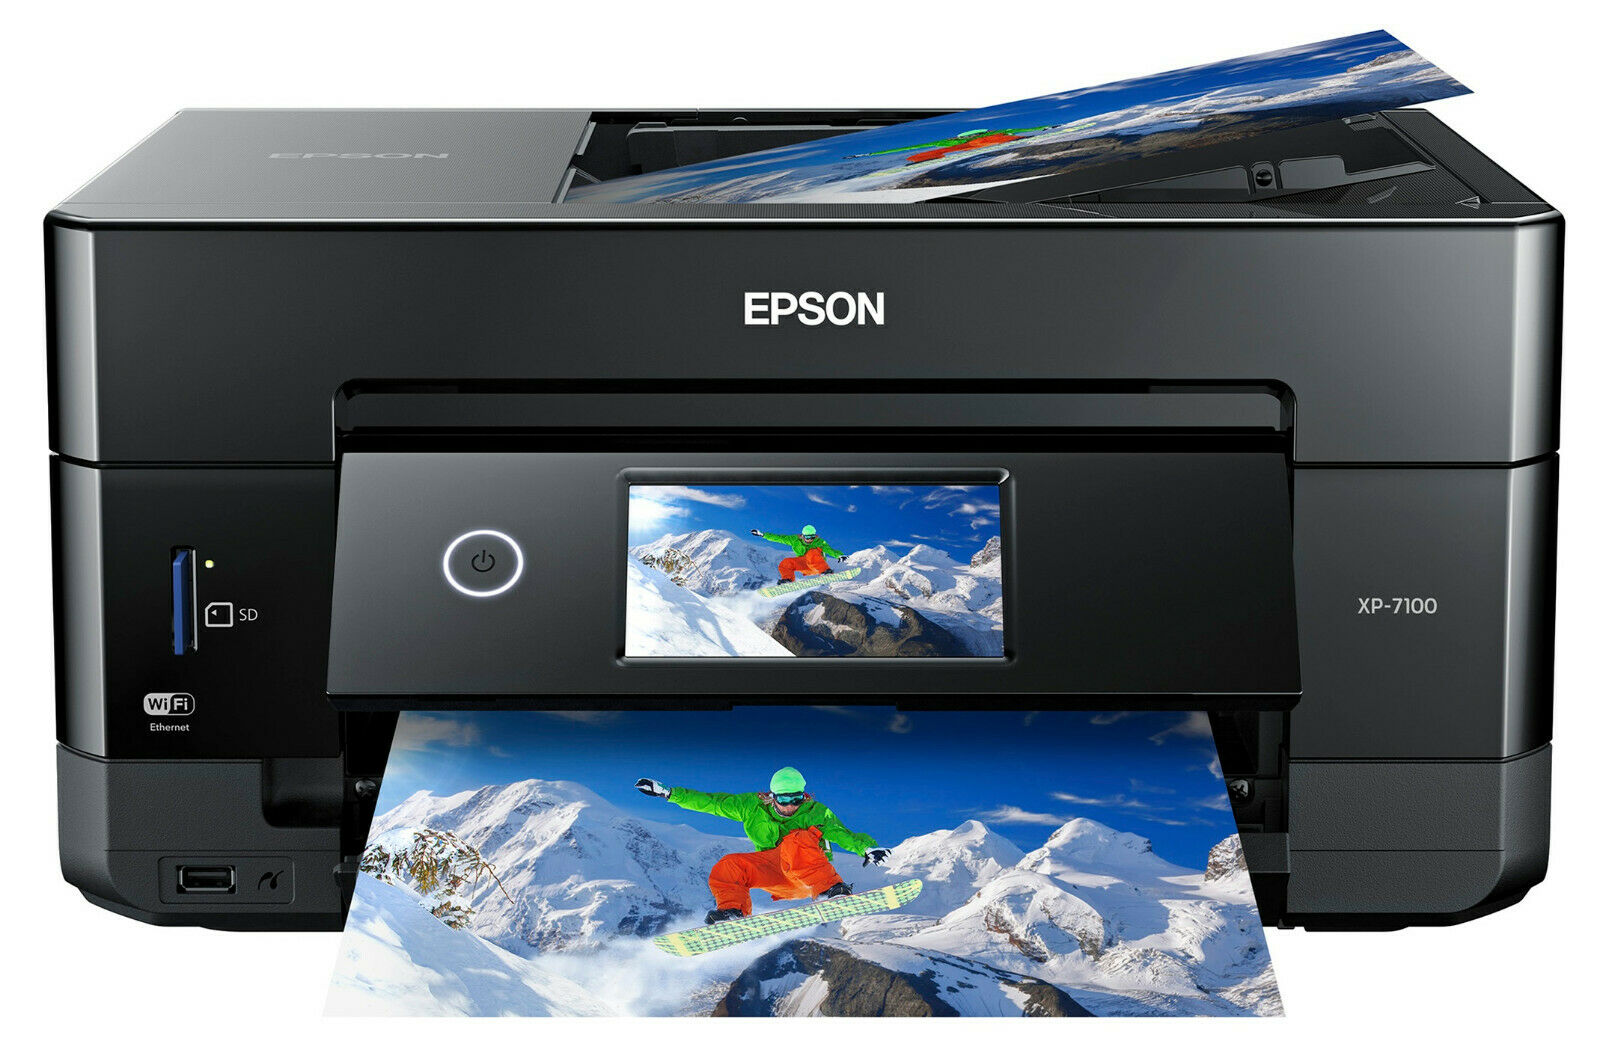 Epson XP-7100 Expression Premium Wireless Color Photo Printe